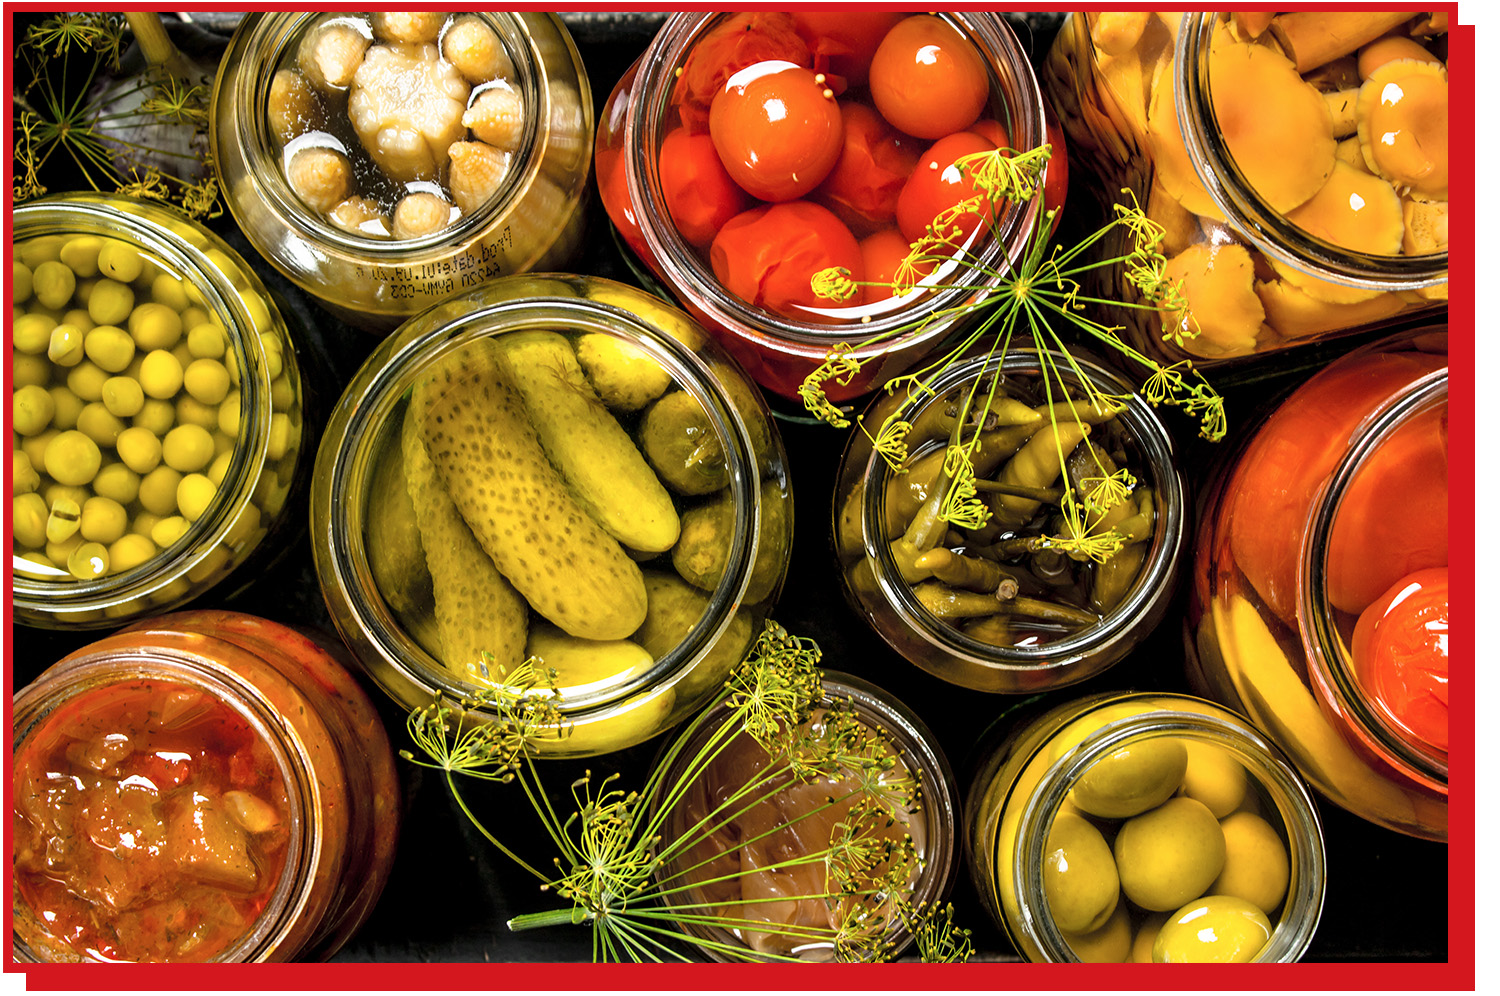 Assorted pickled vegetables in glass jars, as seen from above.